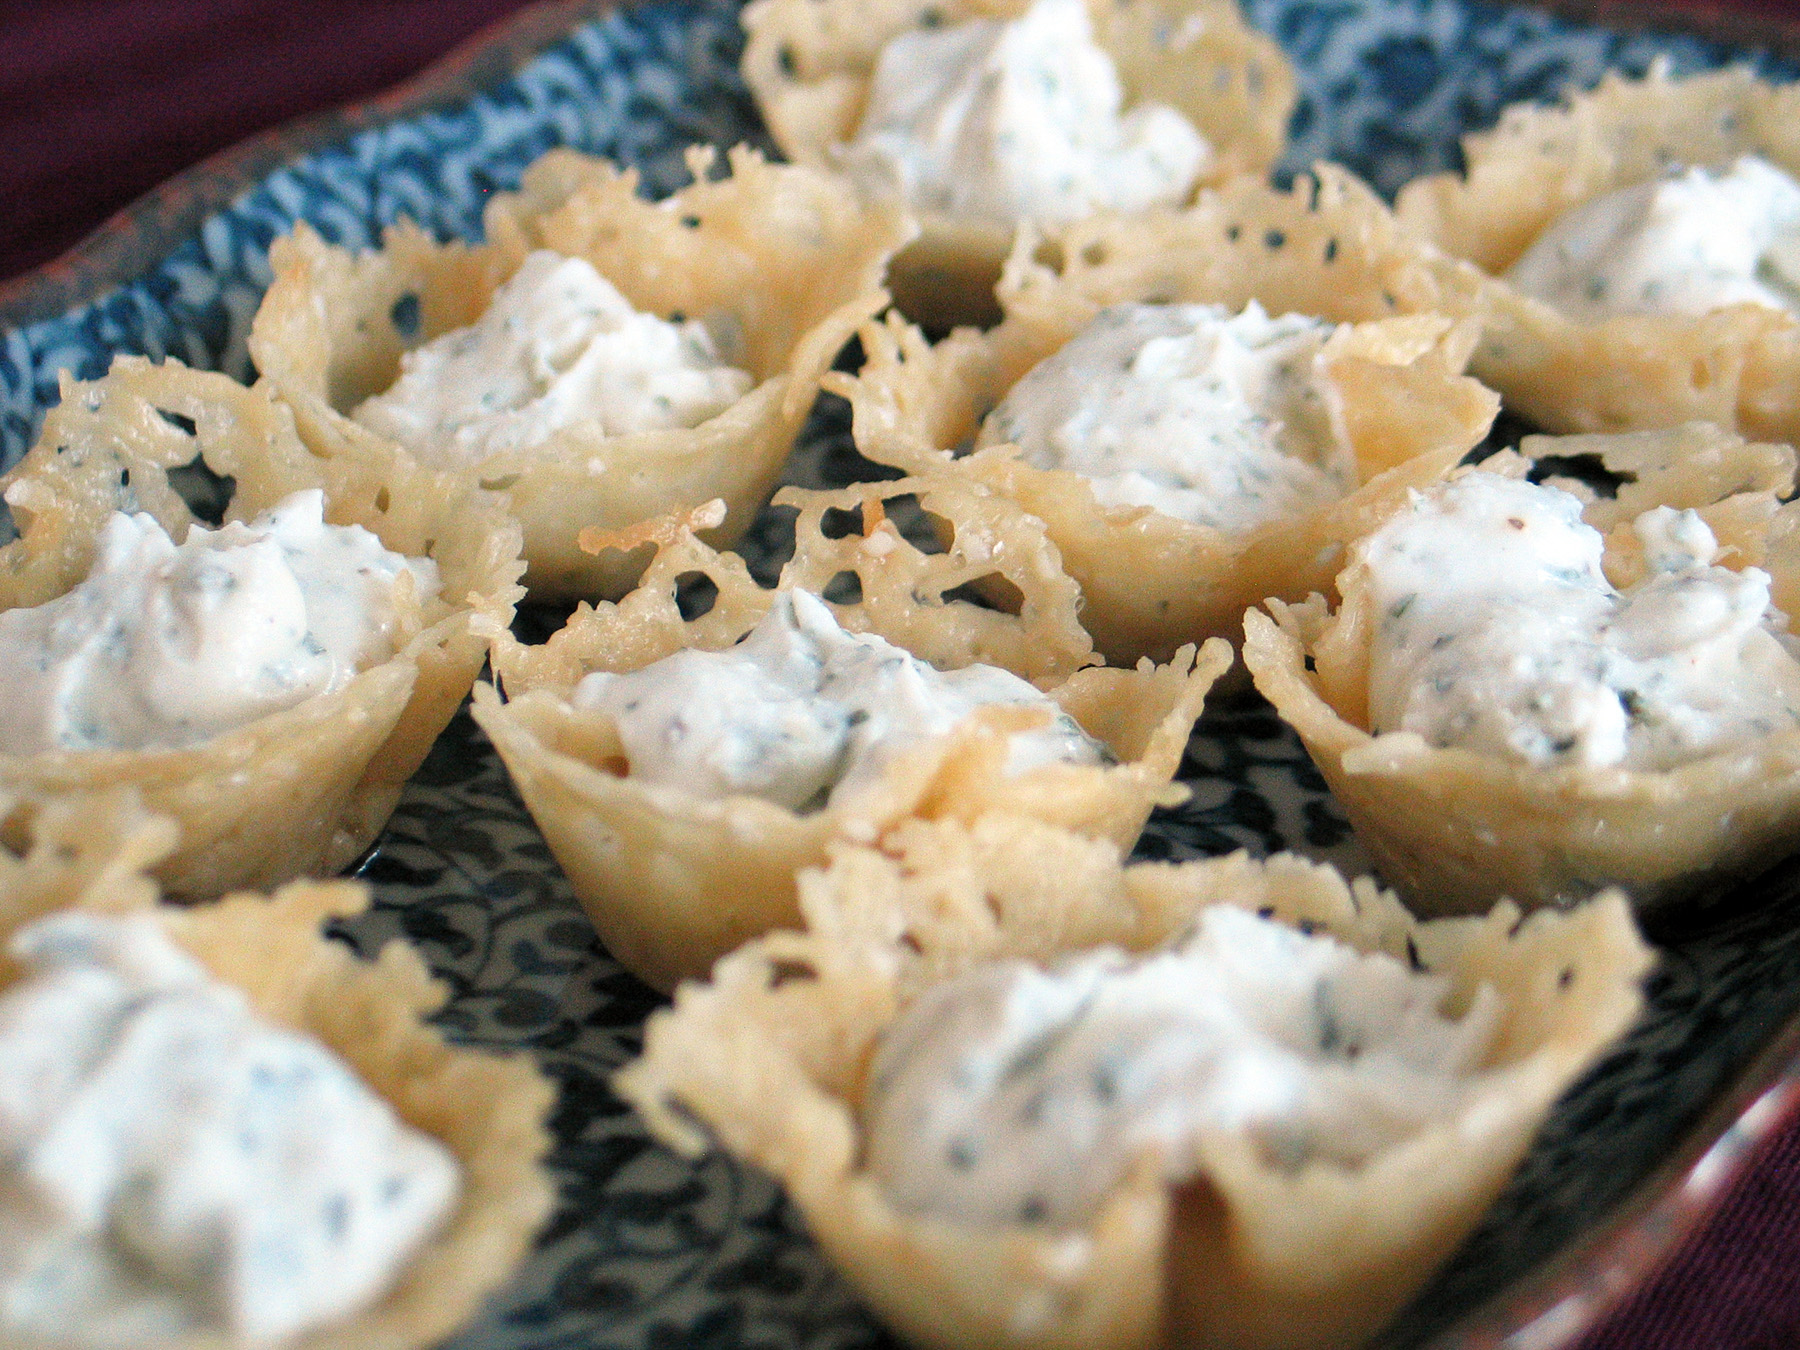 Anil's Cheese Crisps with Goat Cheese Mousse